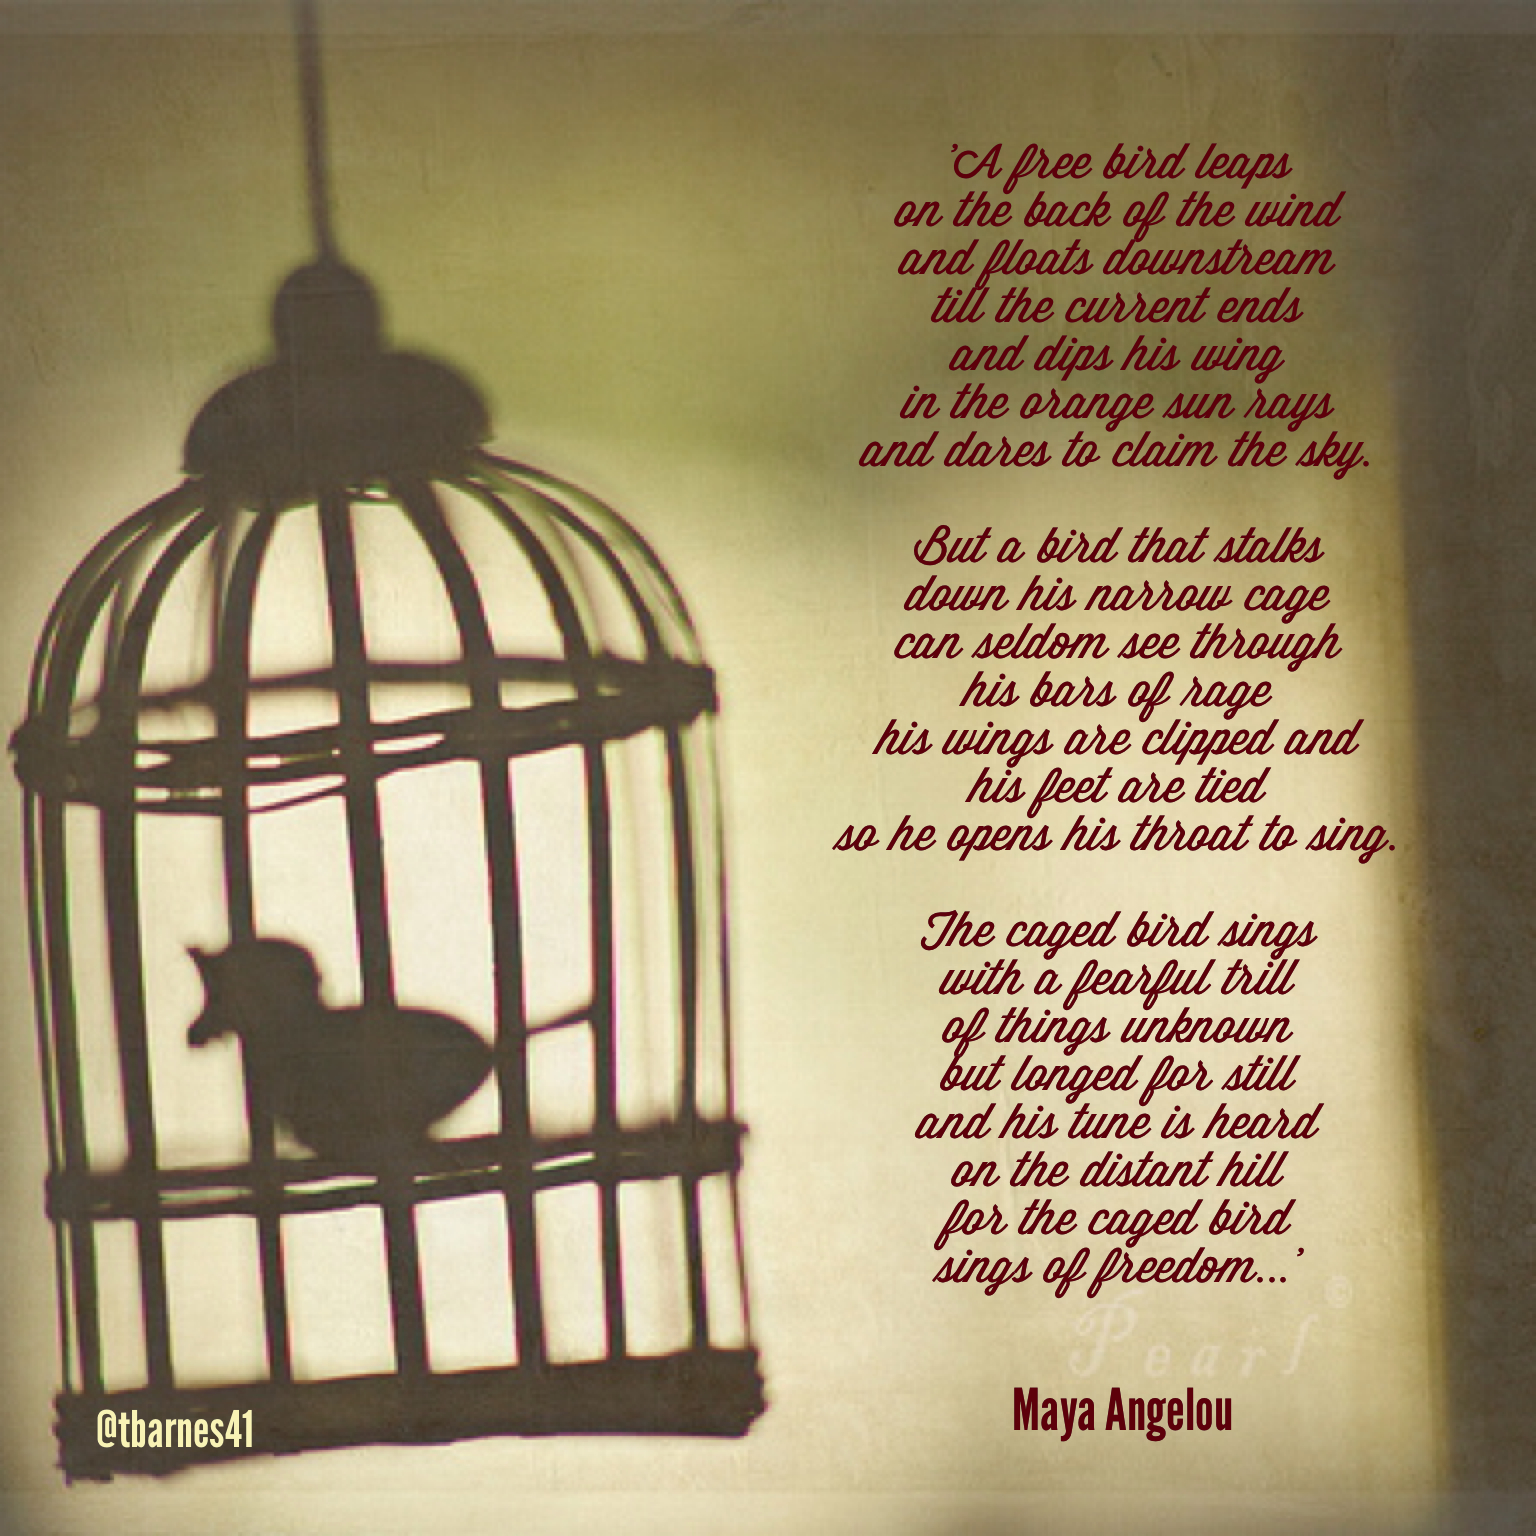 Quotes I Know Why Caged Bird Sings